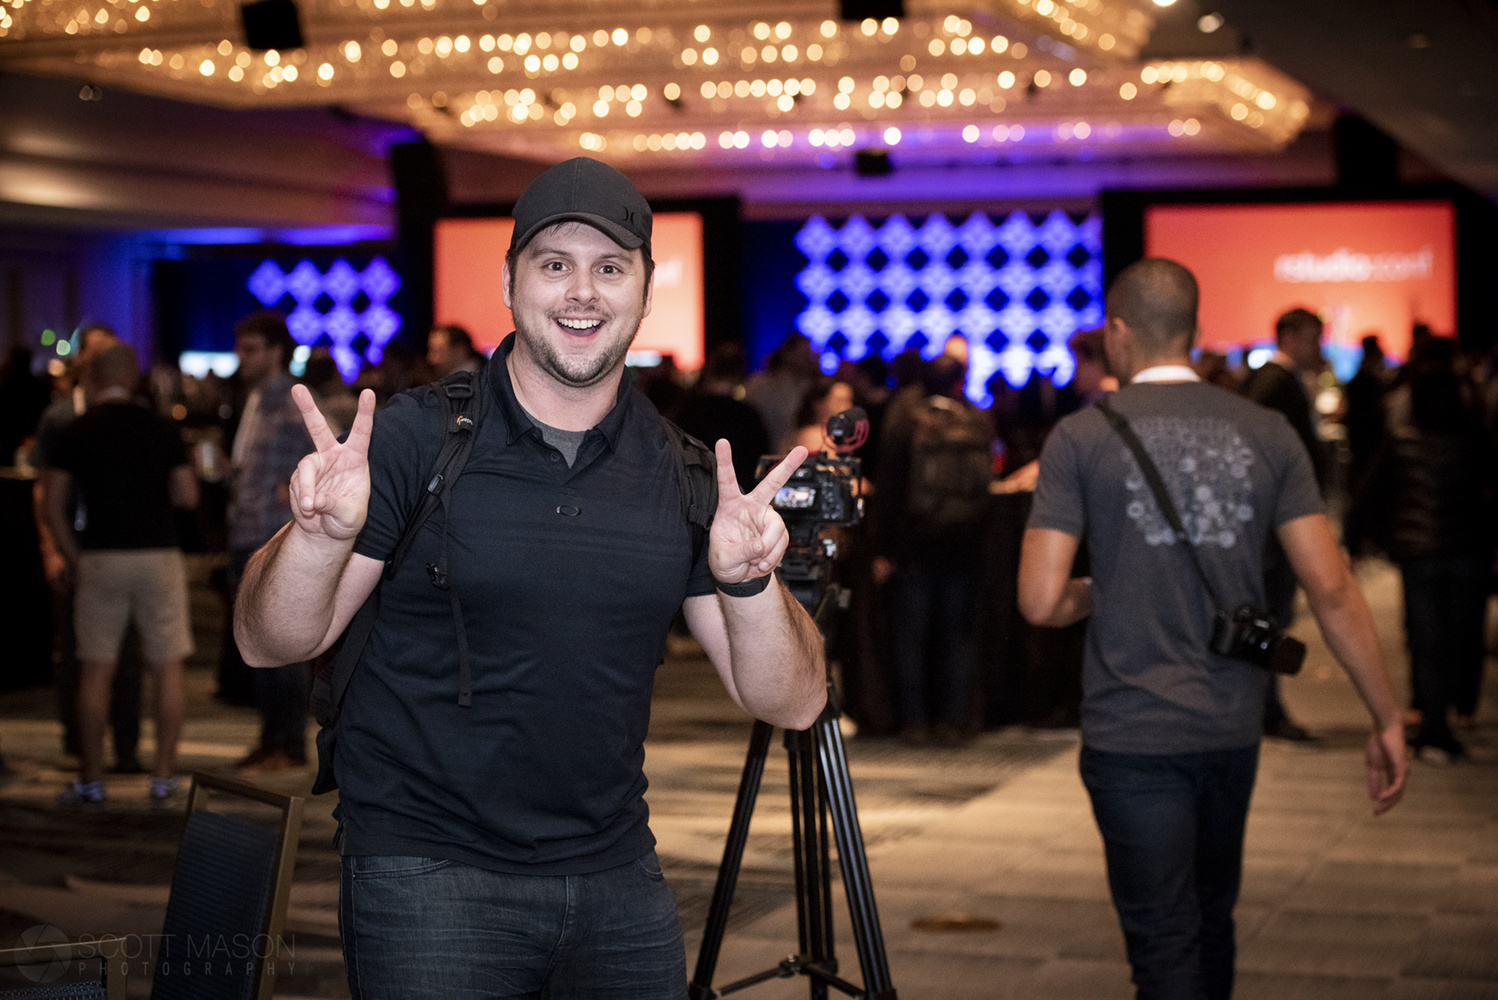 a videographer smiling and giving the peace sign at a conference